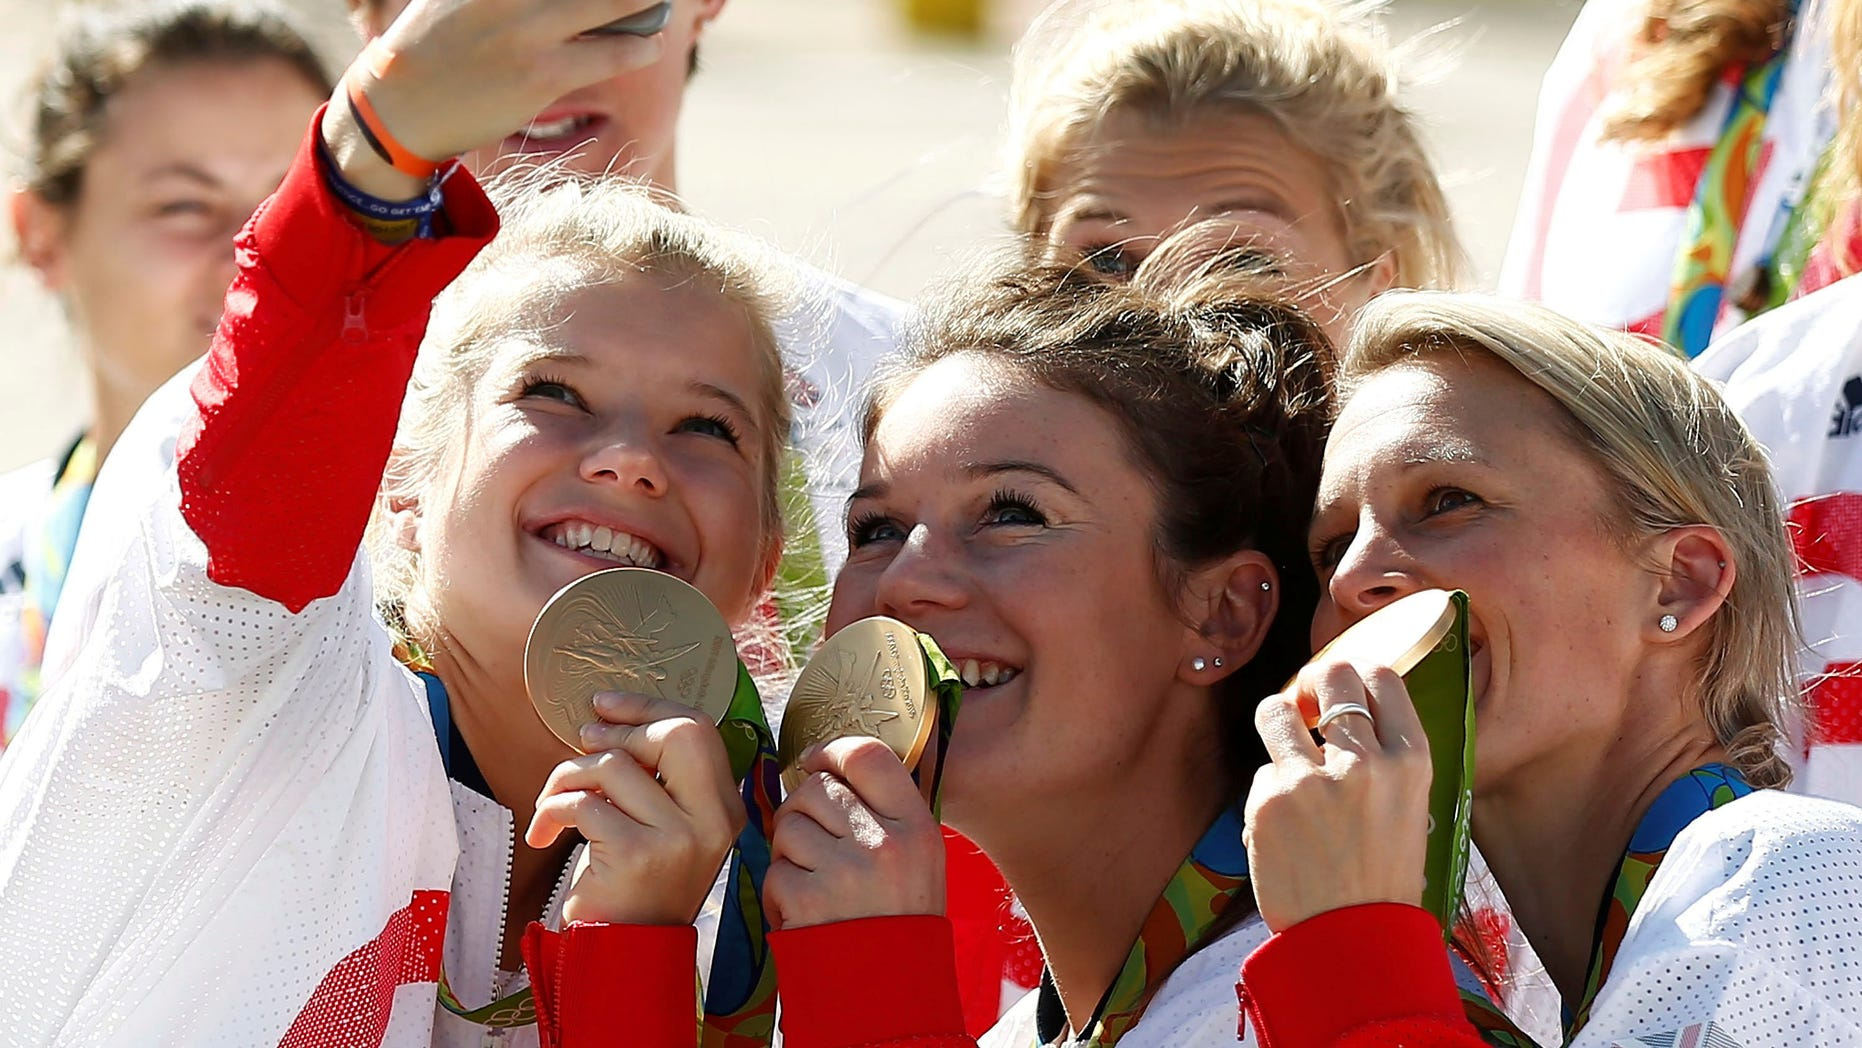 Team GB athletes pose with their medals for selfies as they return home from the 2016 Rio Olympics, at Heathrow Airport in London, Britain August 23, 2016. (REUTERS/Peter Nicholls)